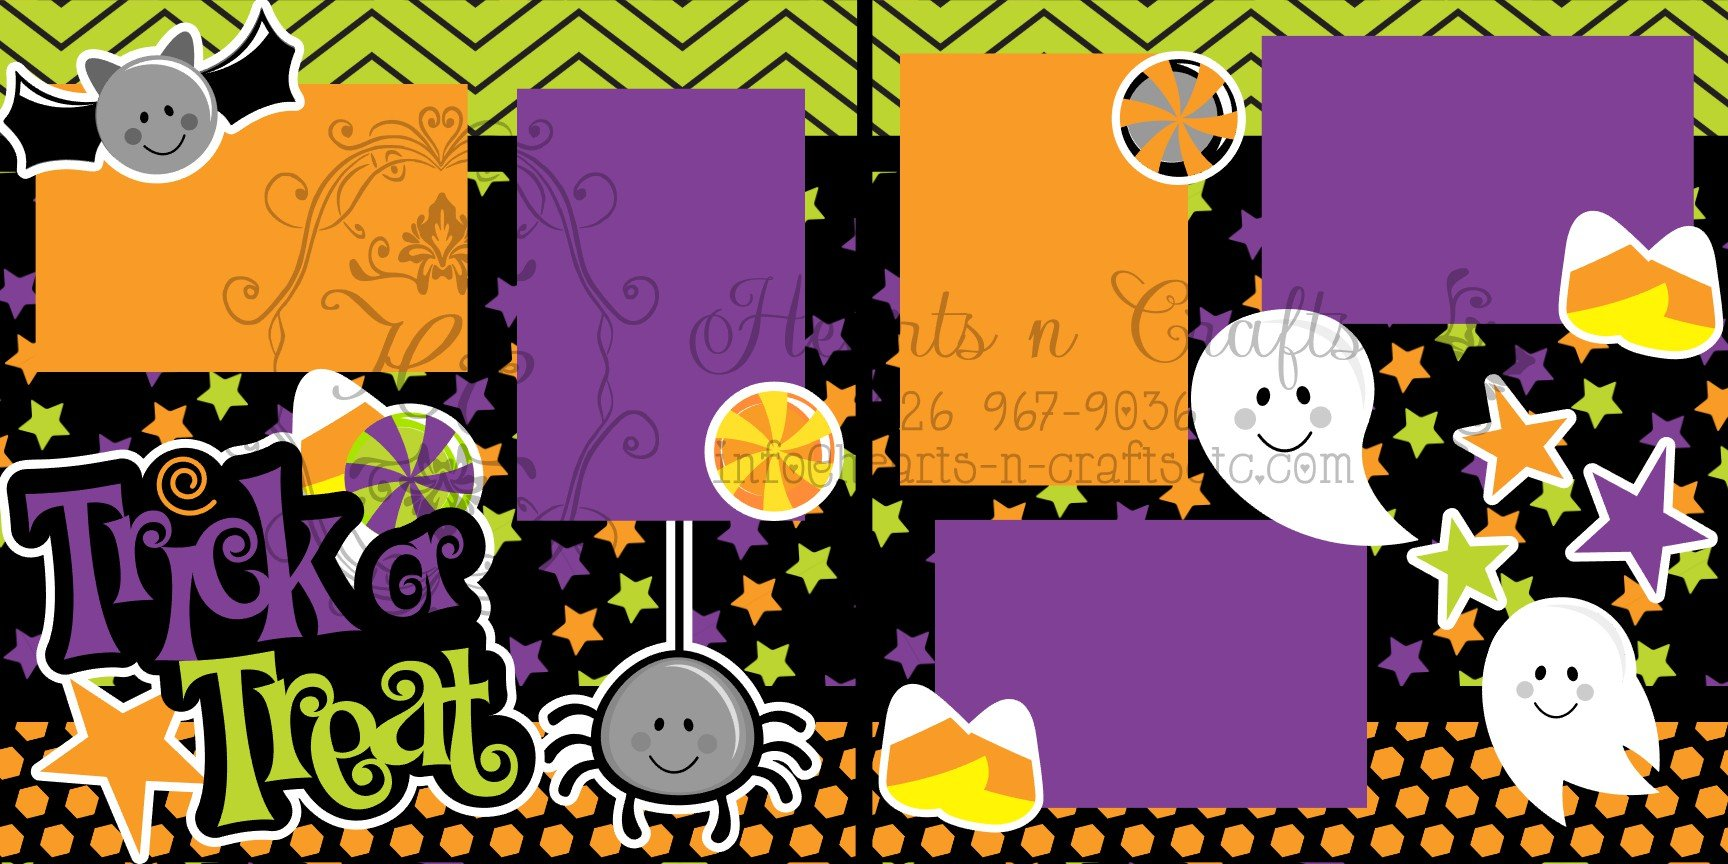 Trick or Treat 2 page layout